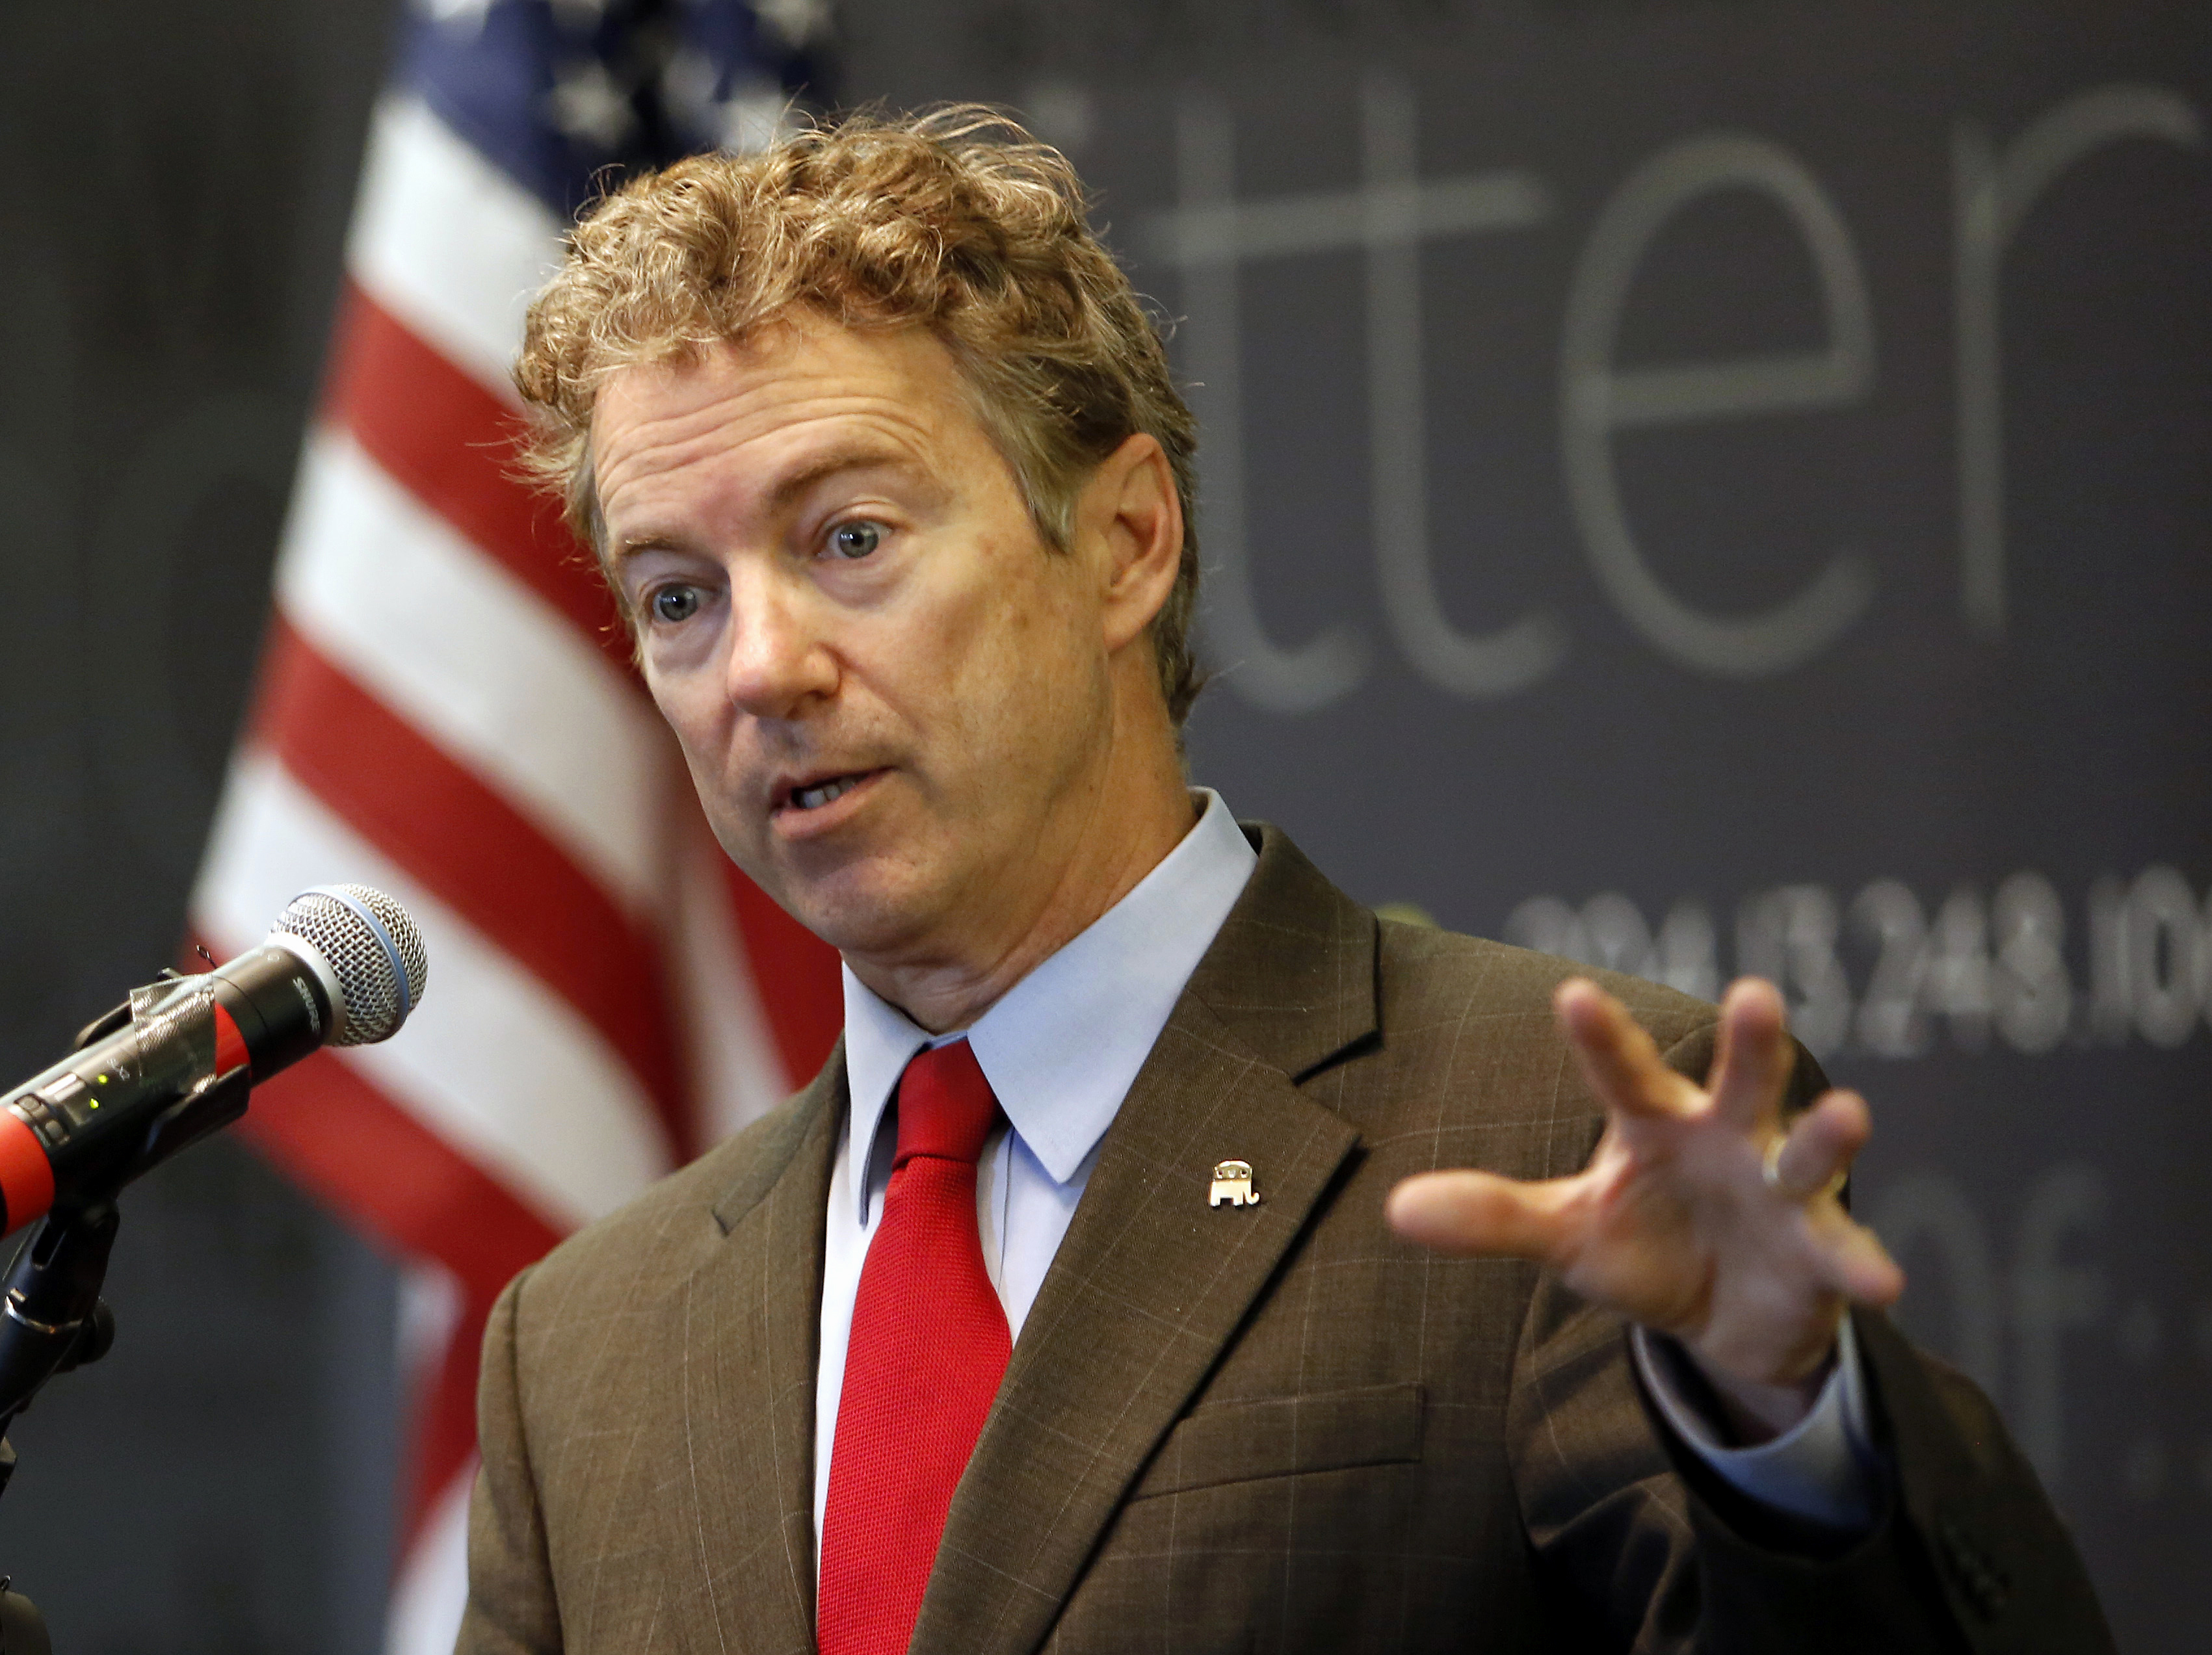 rand paul not my choice to have war republicans on foreign rand paul not my choice to have war republicans on foreign policy washington times